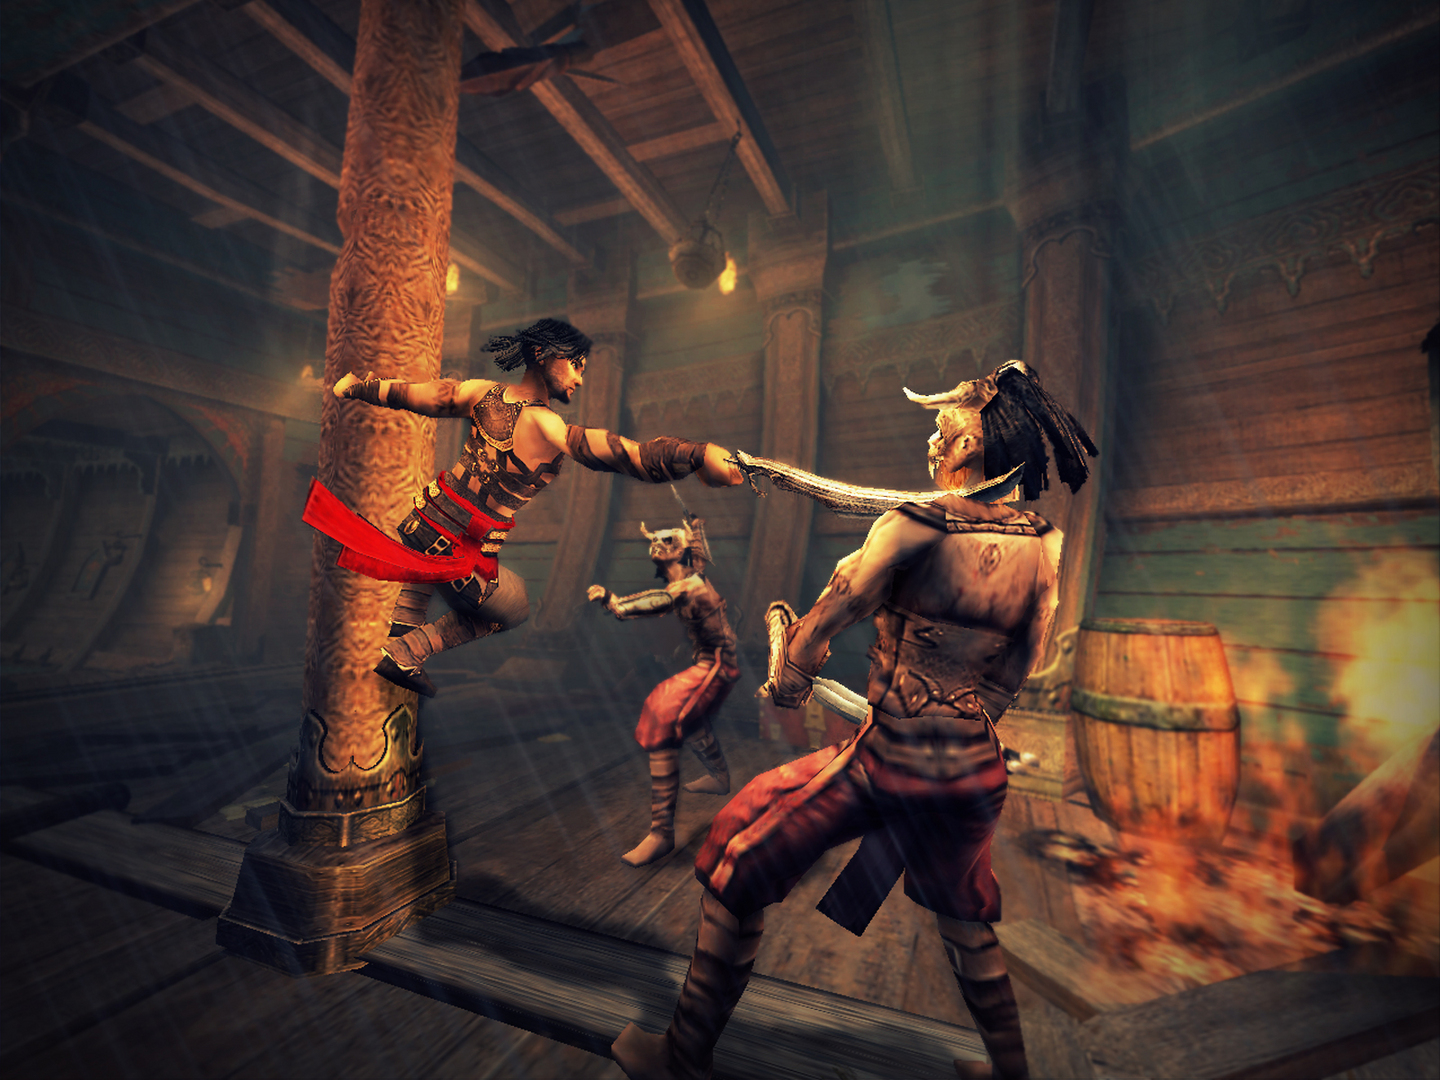 Download game prince of persia 2 warrior within full crack tampa casino ships